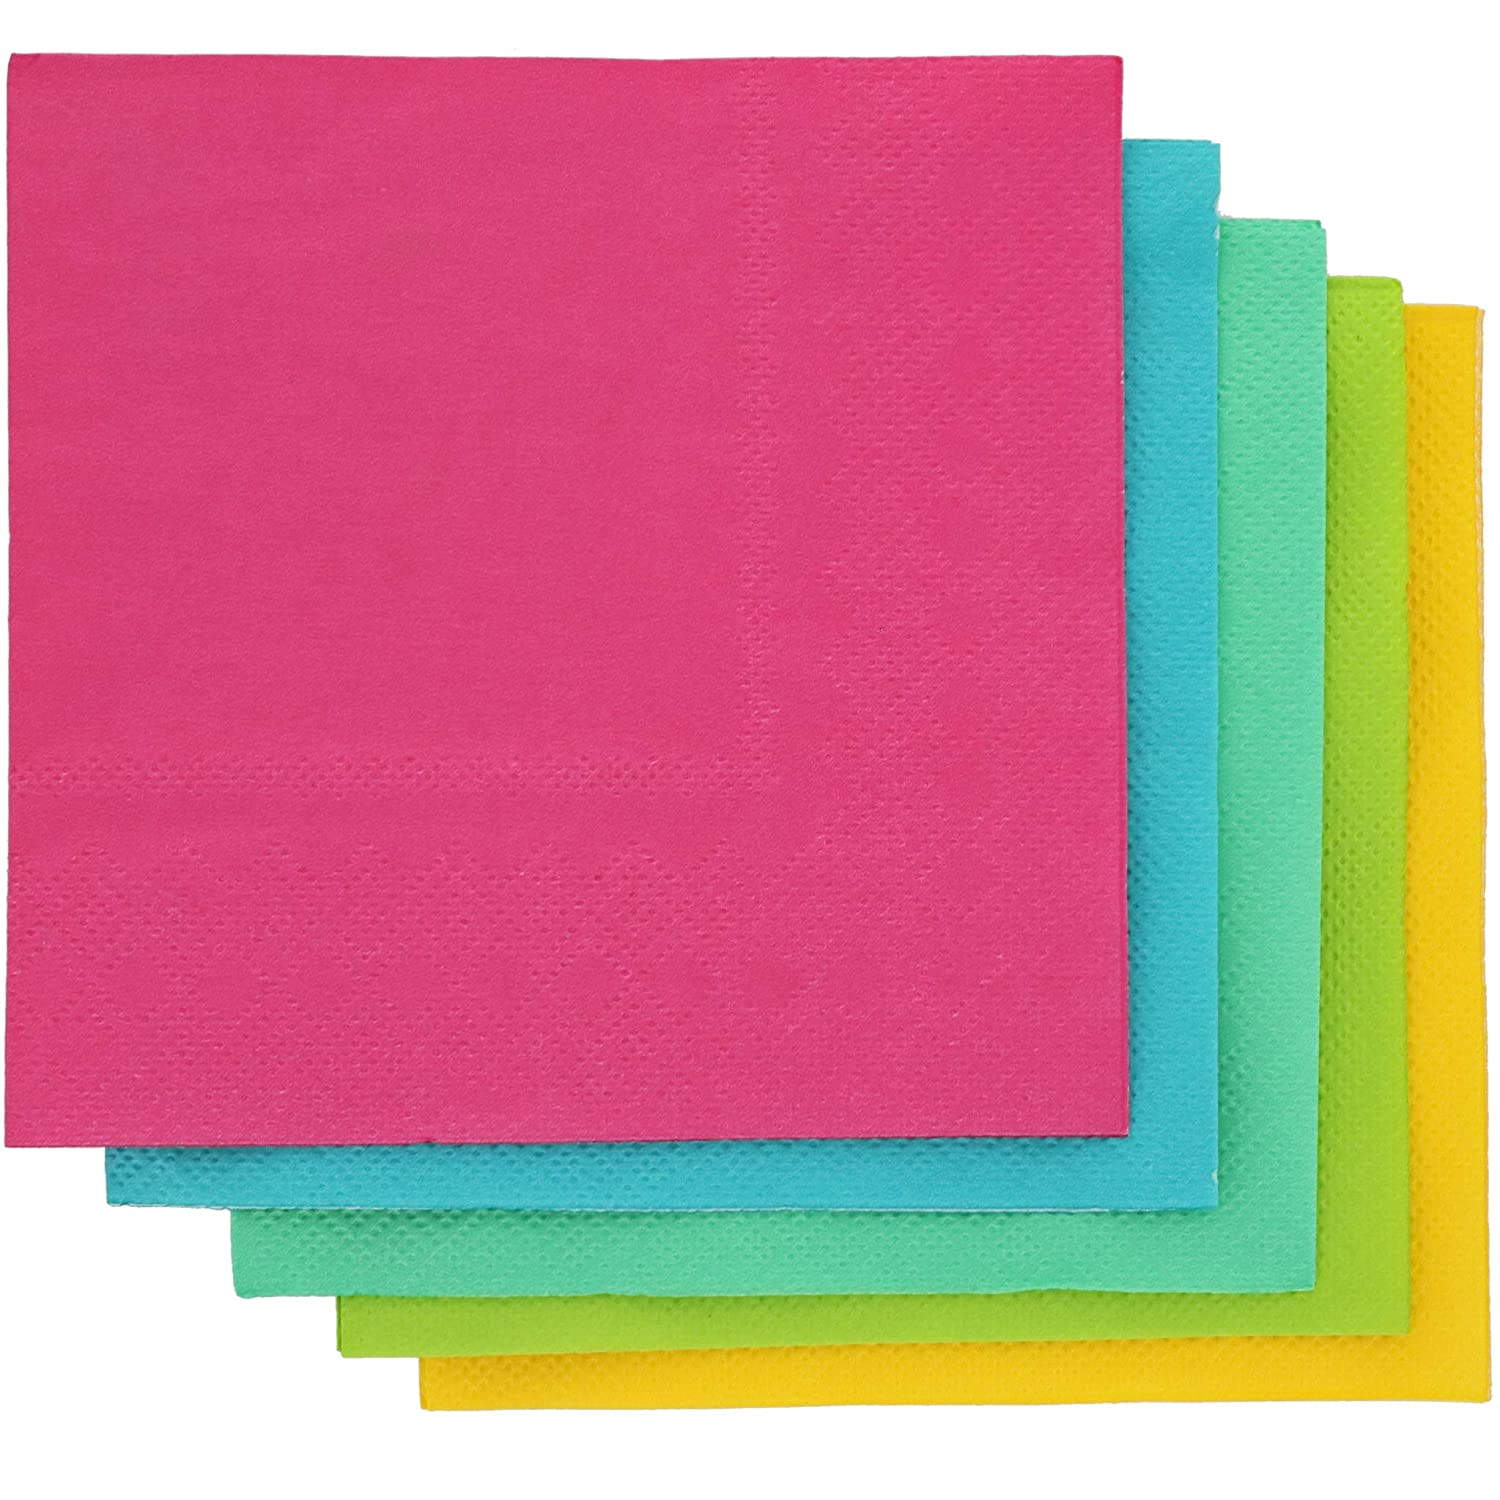 Tropical Neon Paper Napkins, 5 Colors (5 x 5 Inches, 200 Pack)